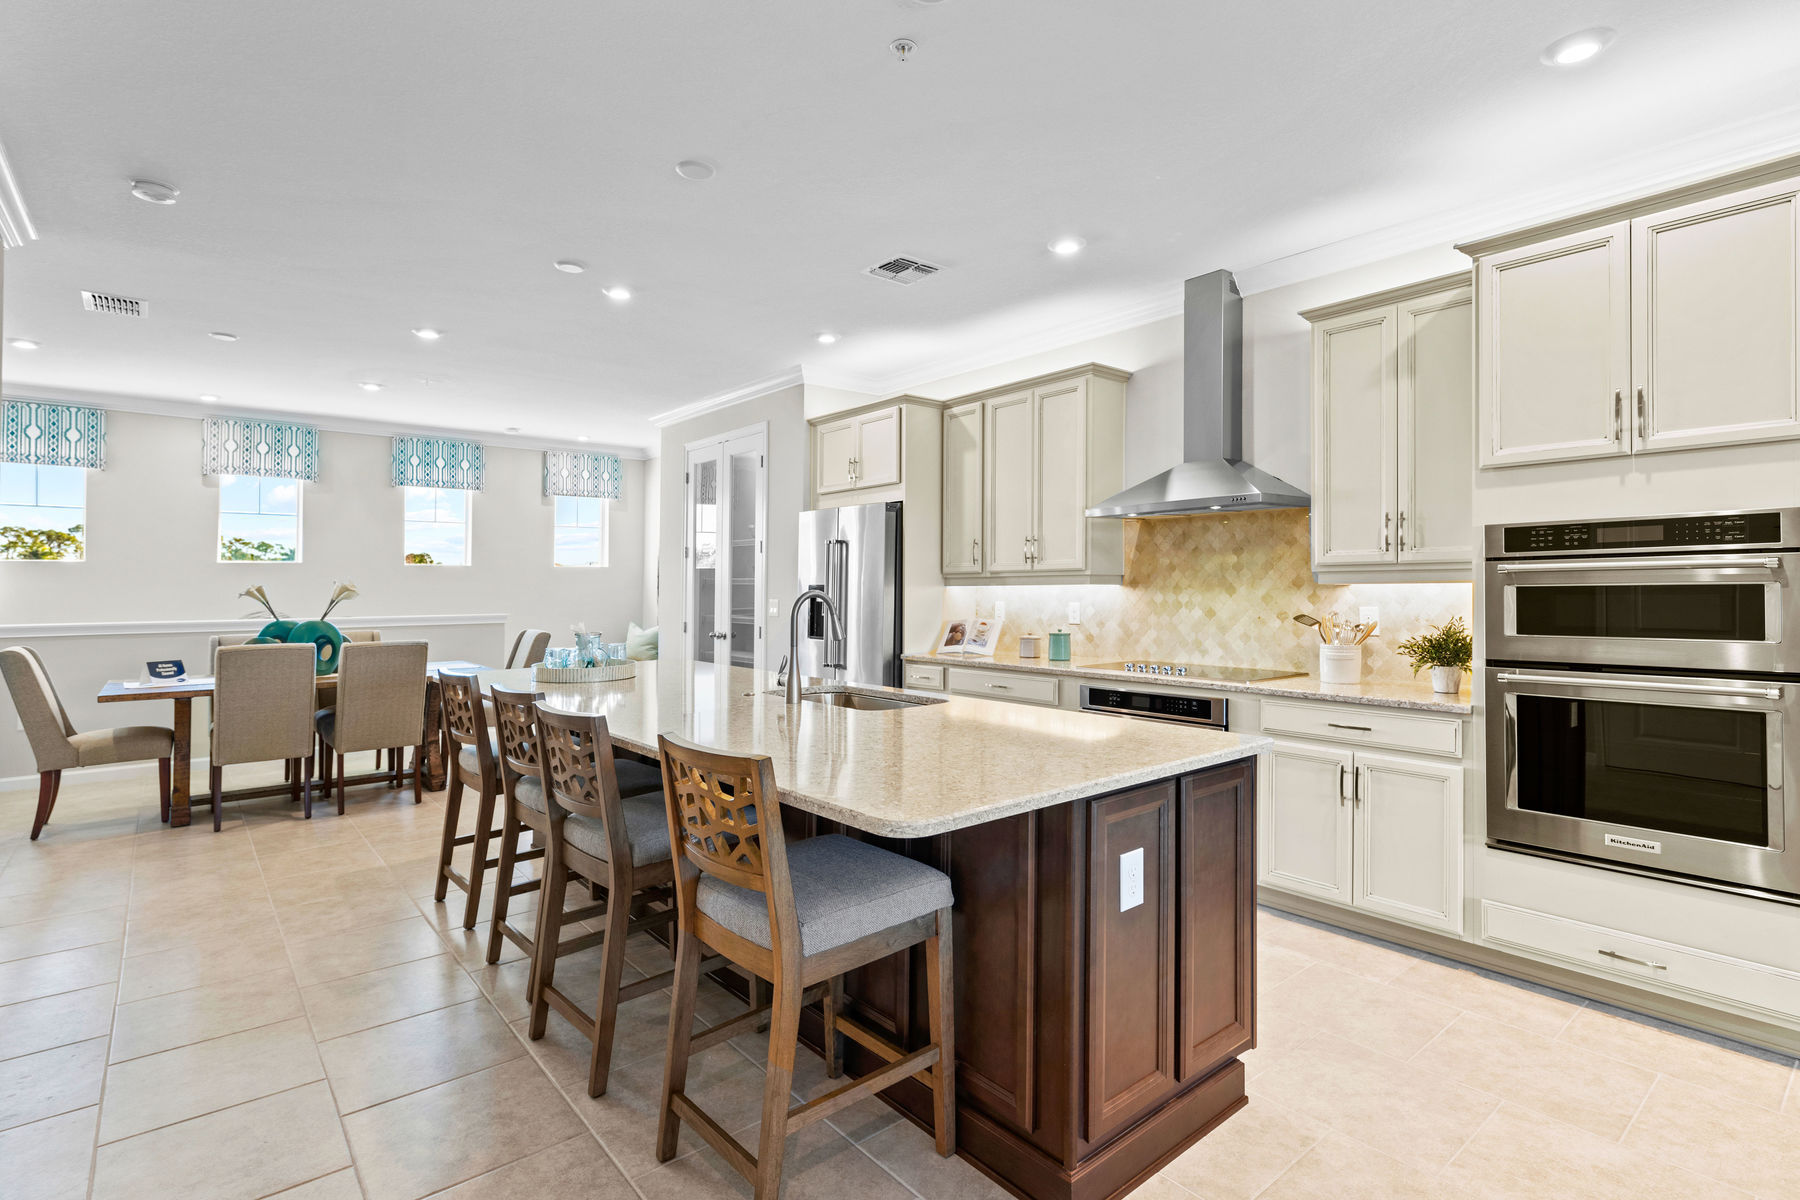 Seabright Plan Kitchen at Arboretum in Naples Florida by Mattamy Homes